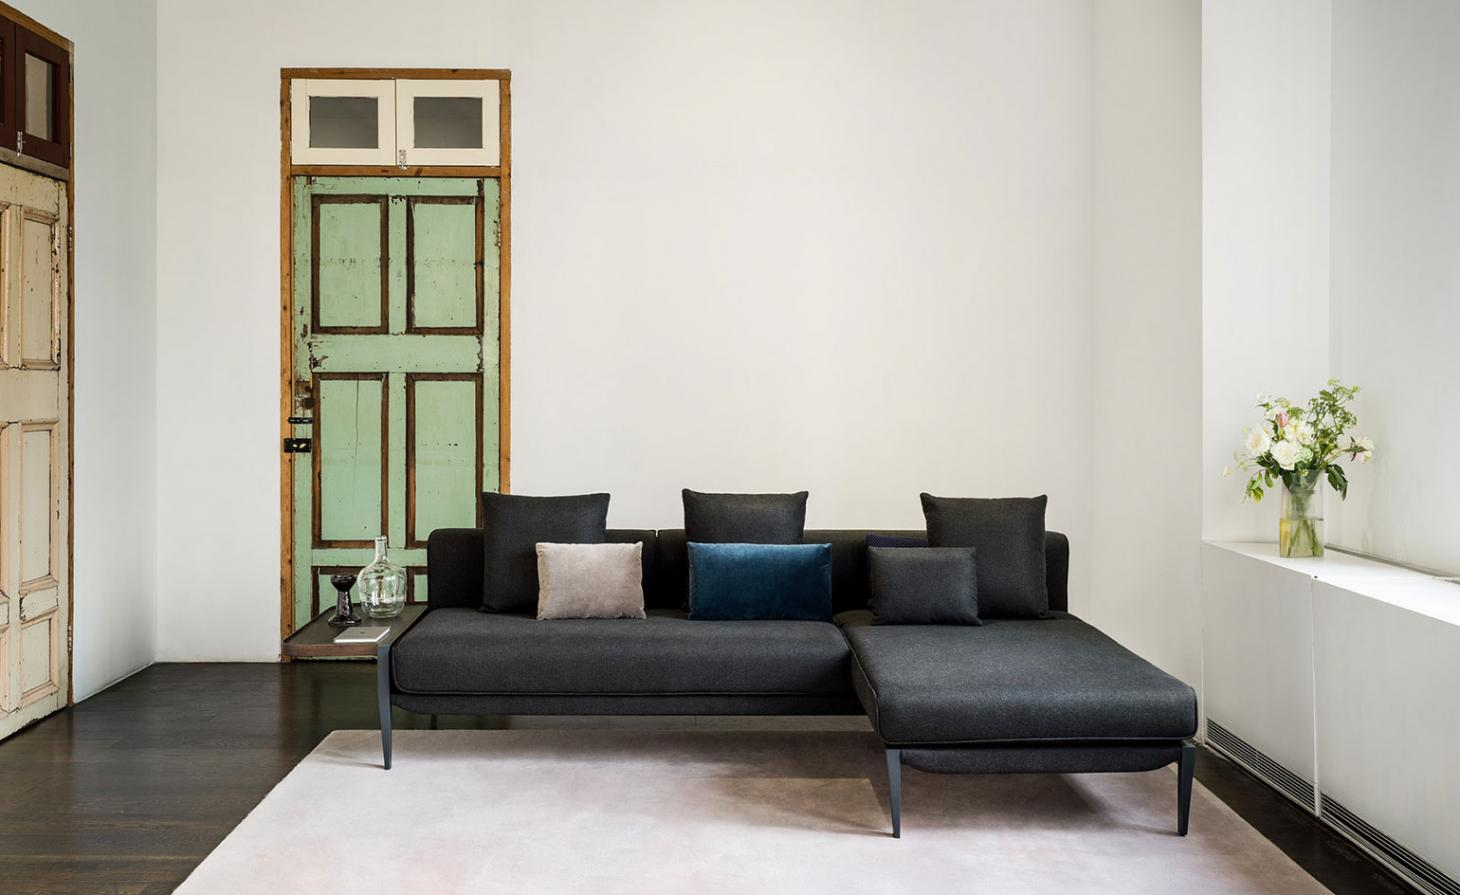 The sofa designed by Michele De Lucchi for Stellar Work is shown here with charcoal upholstery. The sofa is photographed on a cream coloured rug and with a green door in the background